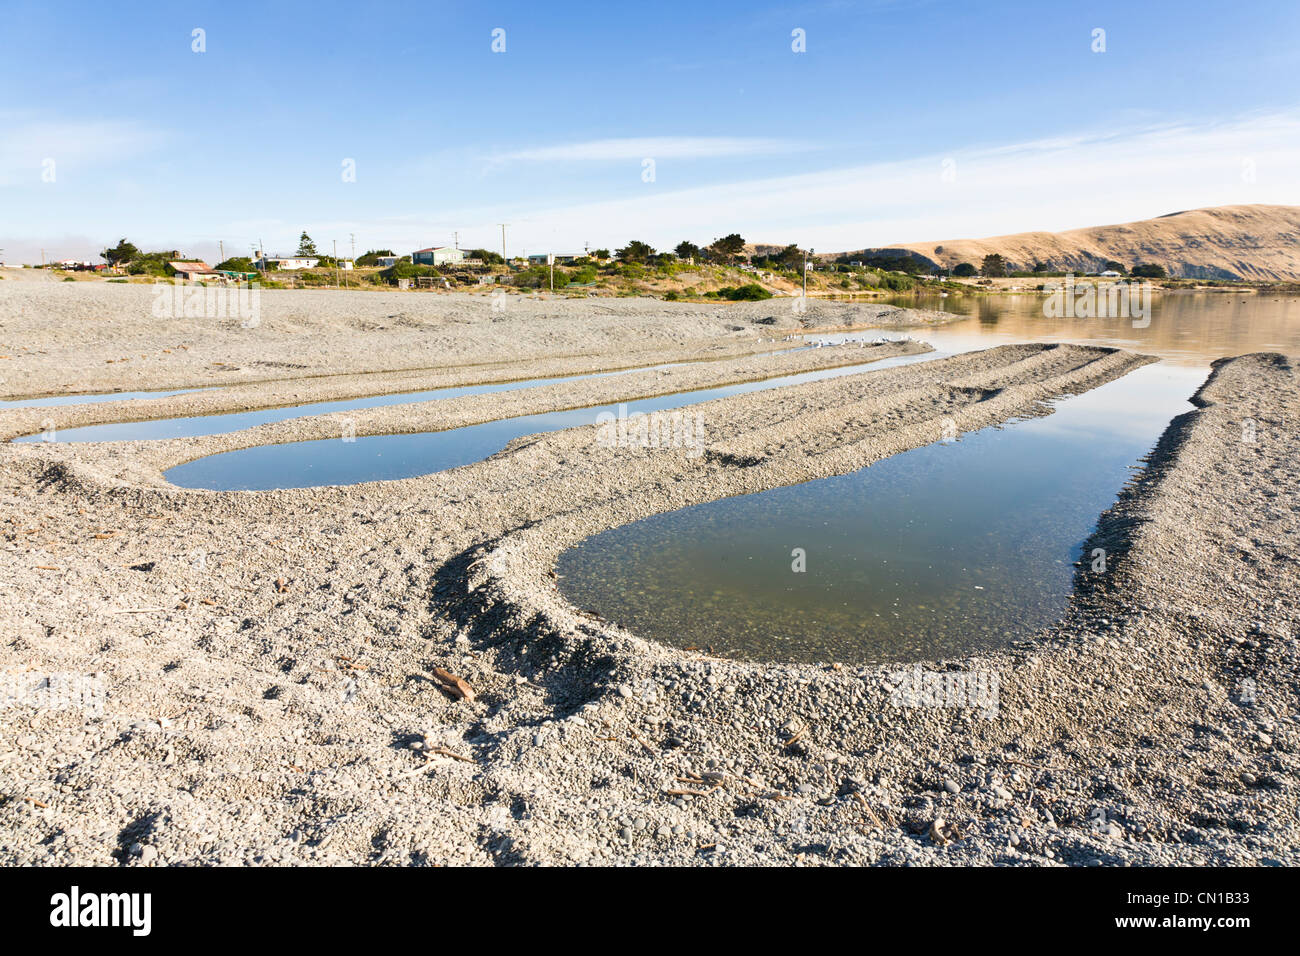 Eel traps or drains at Birdlings Flat, Banks Peninsula, Canterbury, New Zealand. - Stock Image